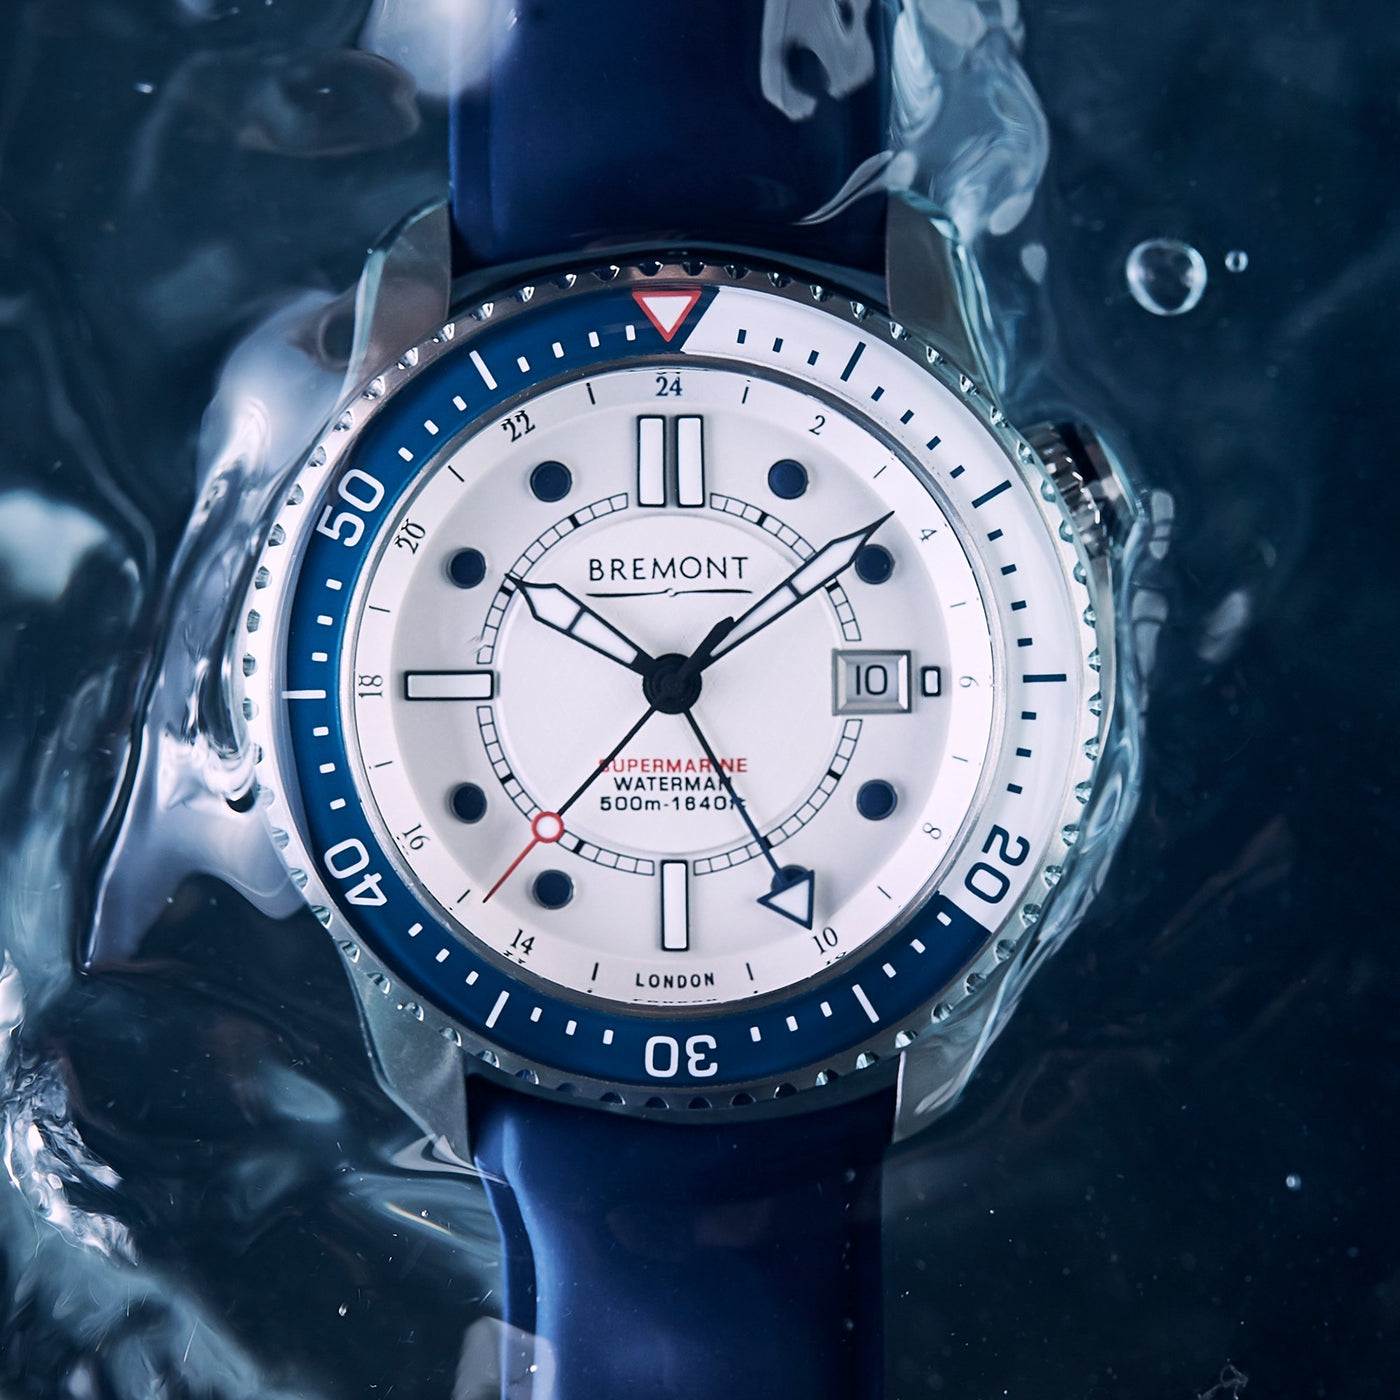 Bremont Waterman 1